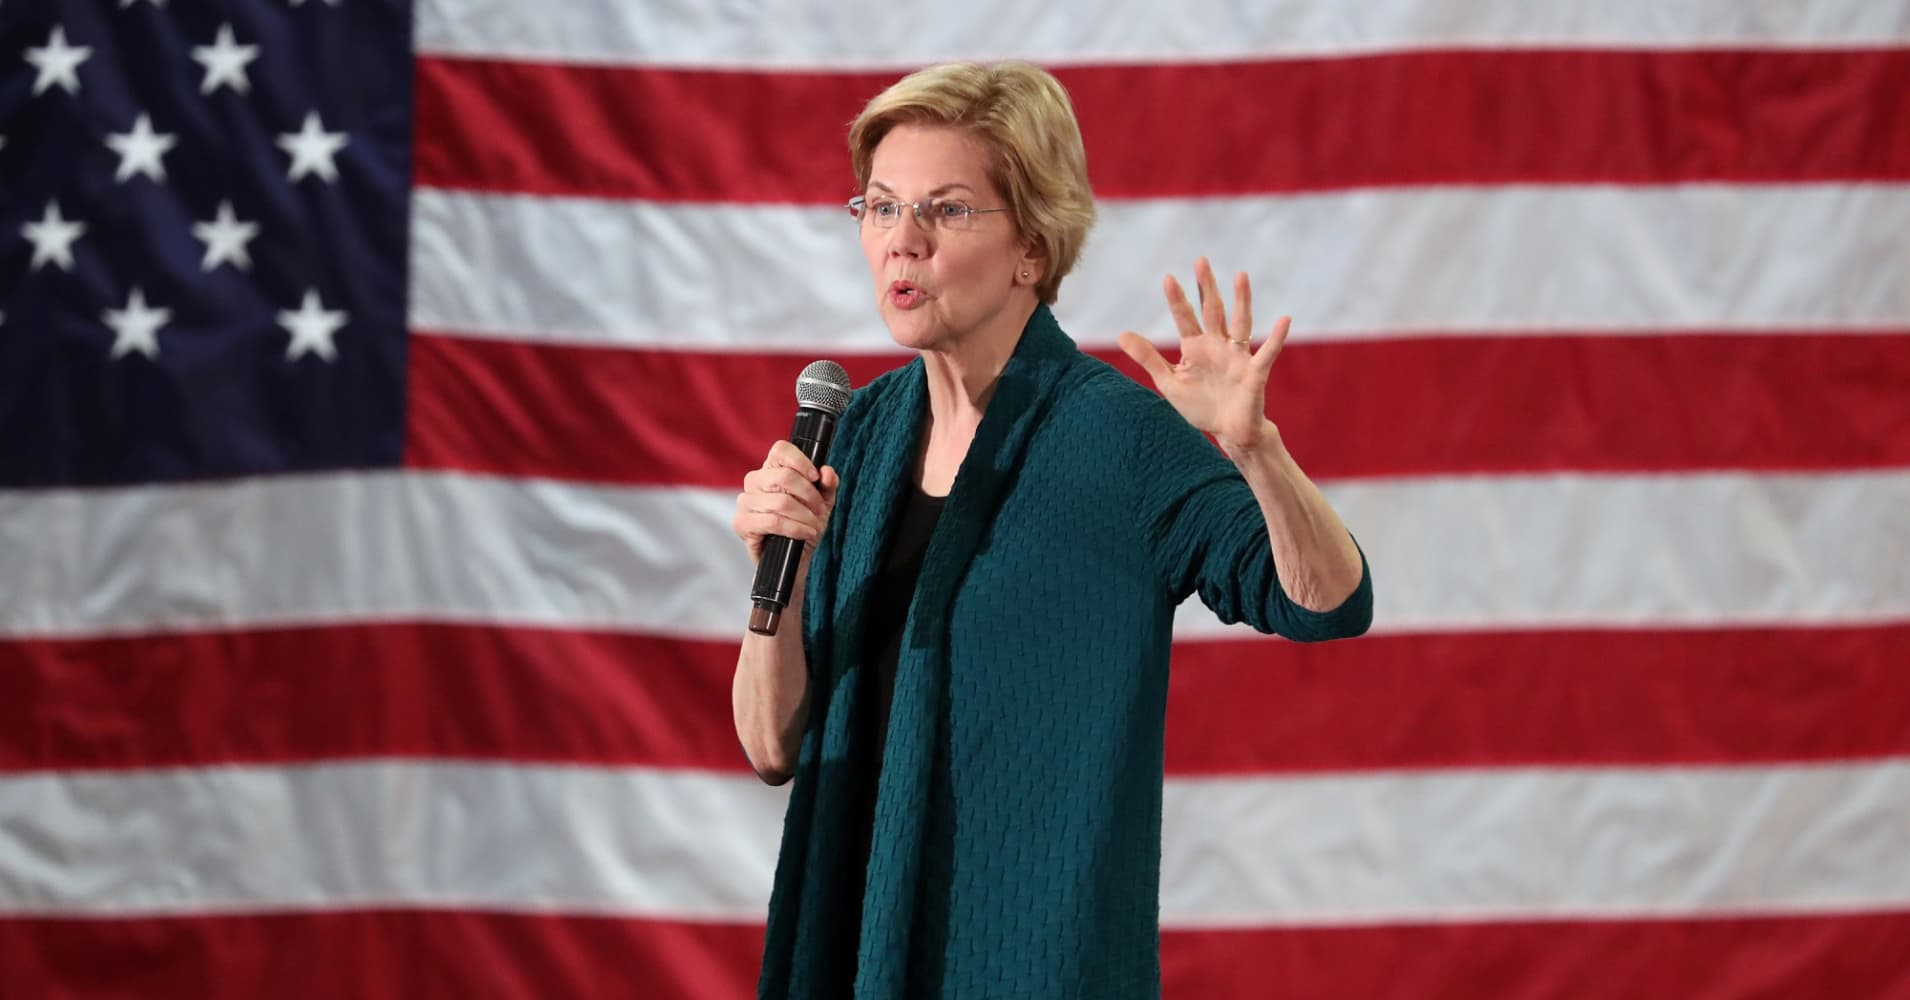 Elizabeth Warren's $1.25 trillion education plan aims to end the cycle of student debt—here's how